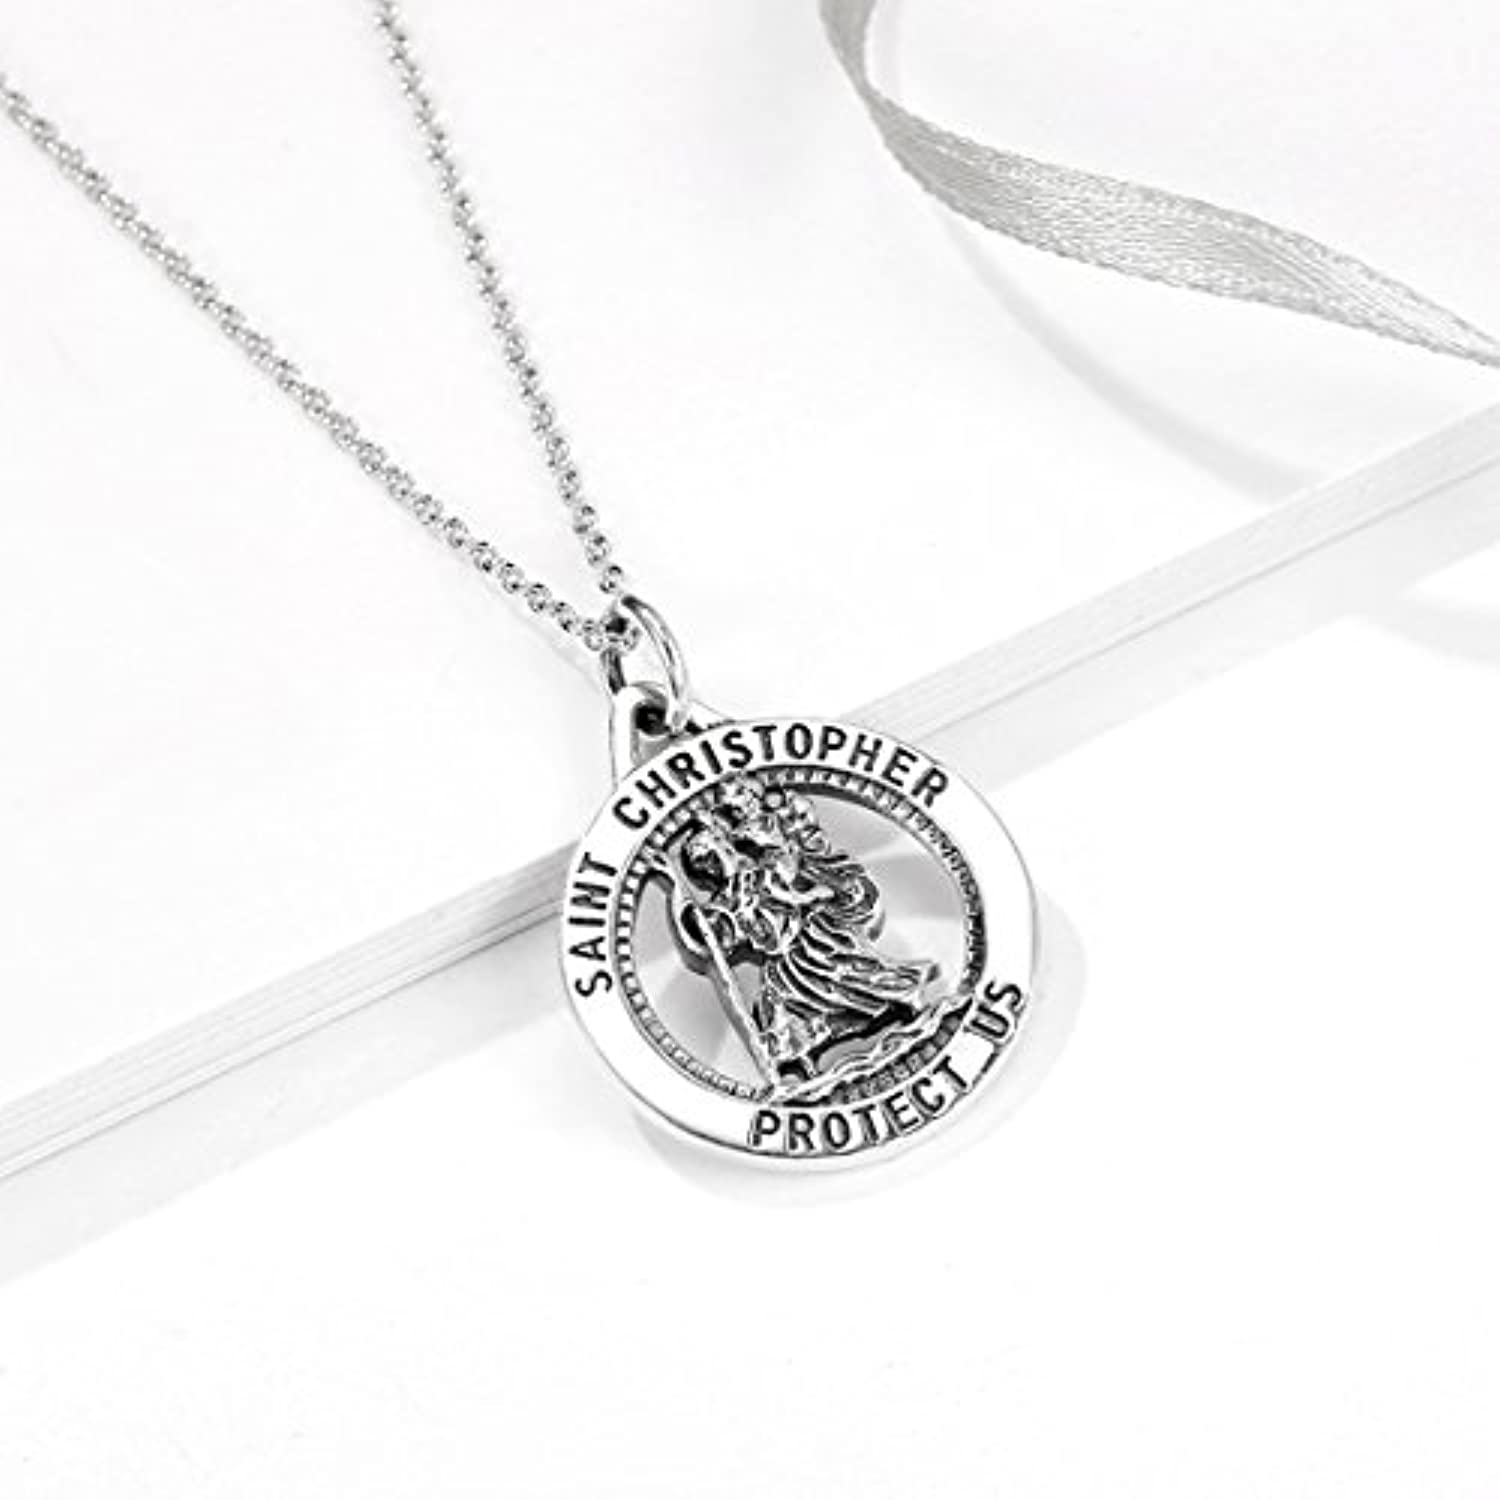 Saint Christopher Protect Us Necklace 925 Sterling Silver Religious Engraved Medallion Pendant Necklace Jewelry